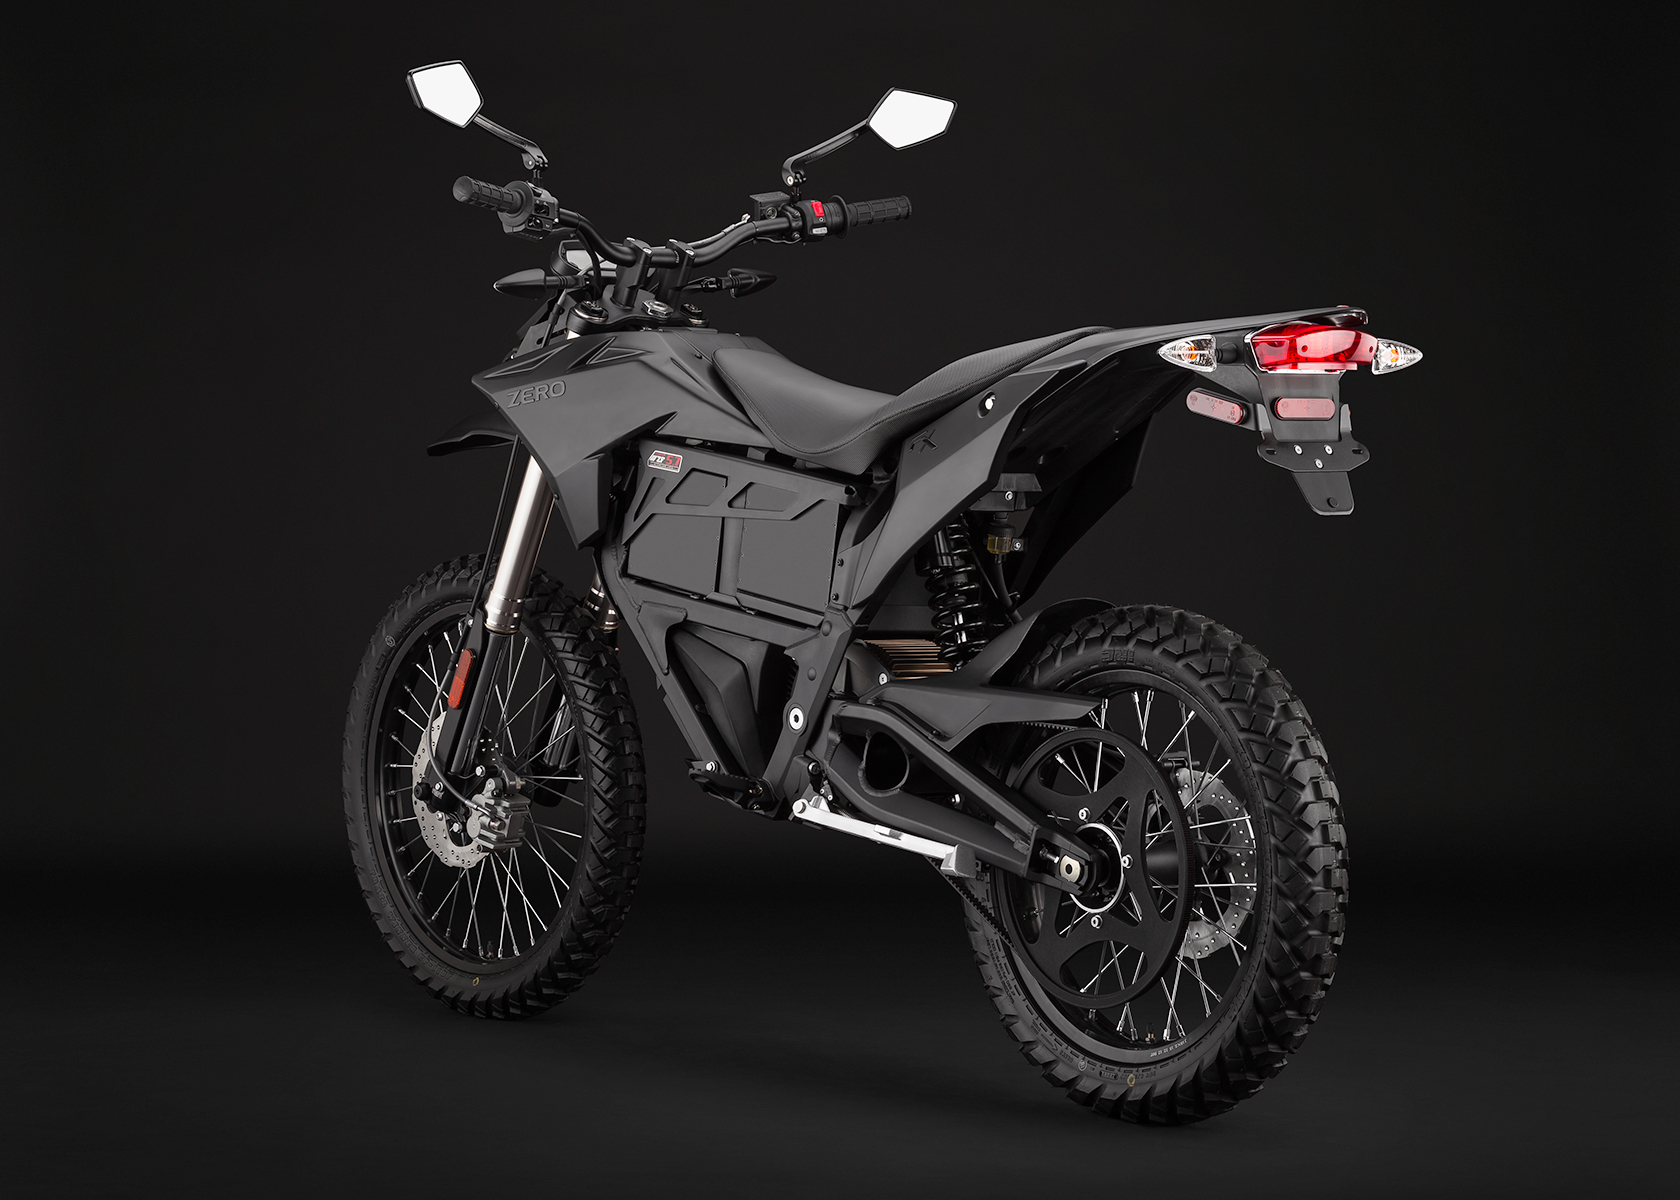 2014 Zero FX Electric Motorcycle: Black Angle Left